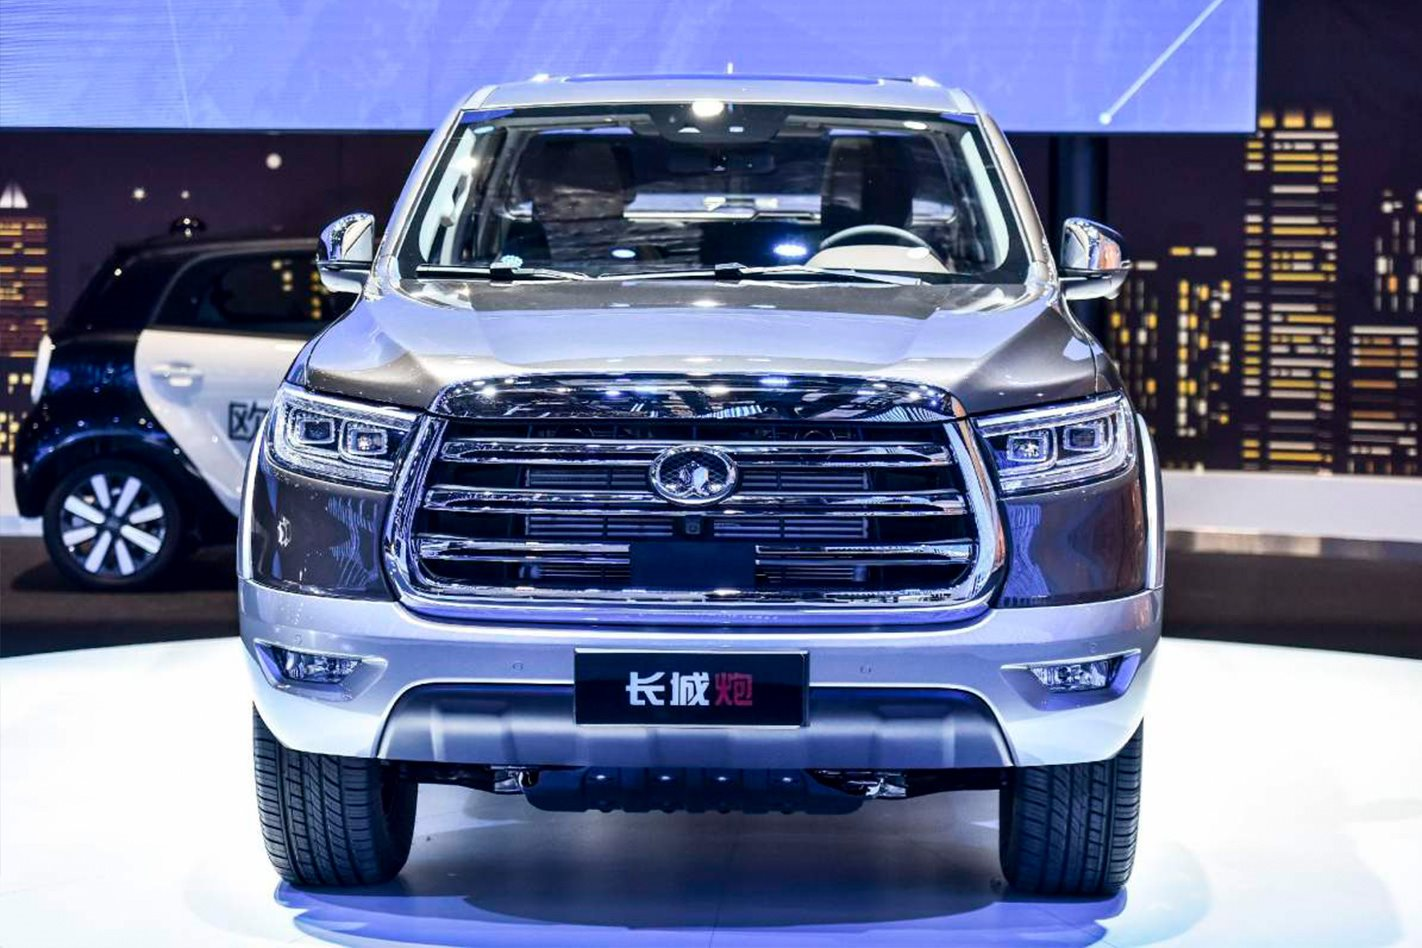 2020 Great Wall Model P ute: what we know so far